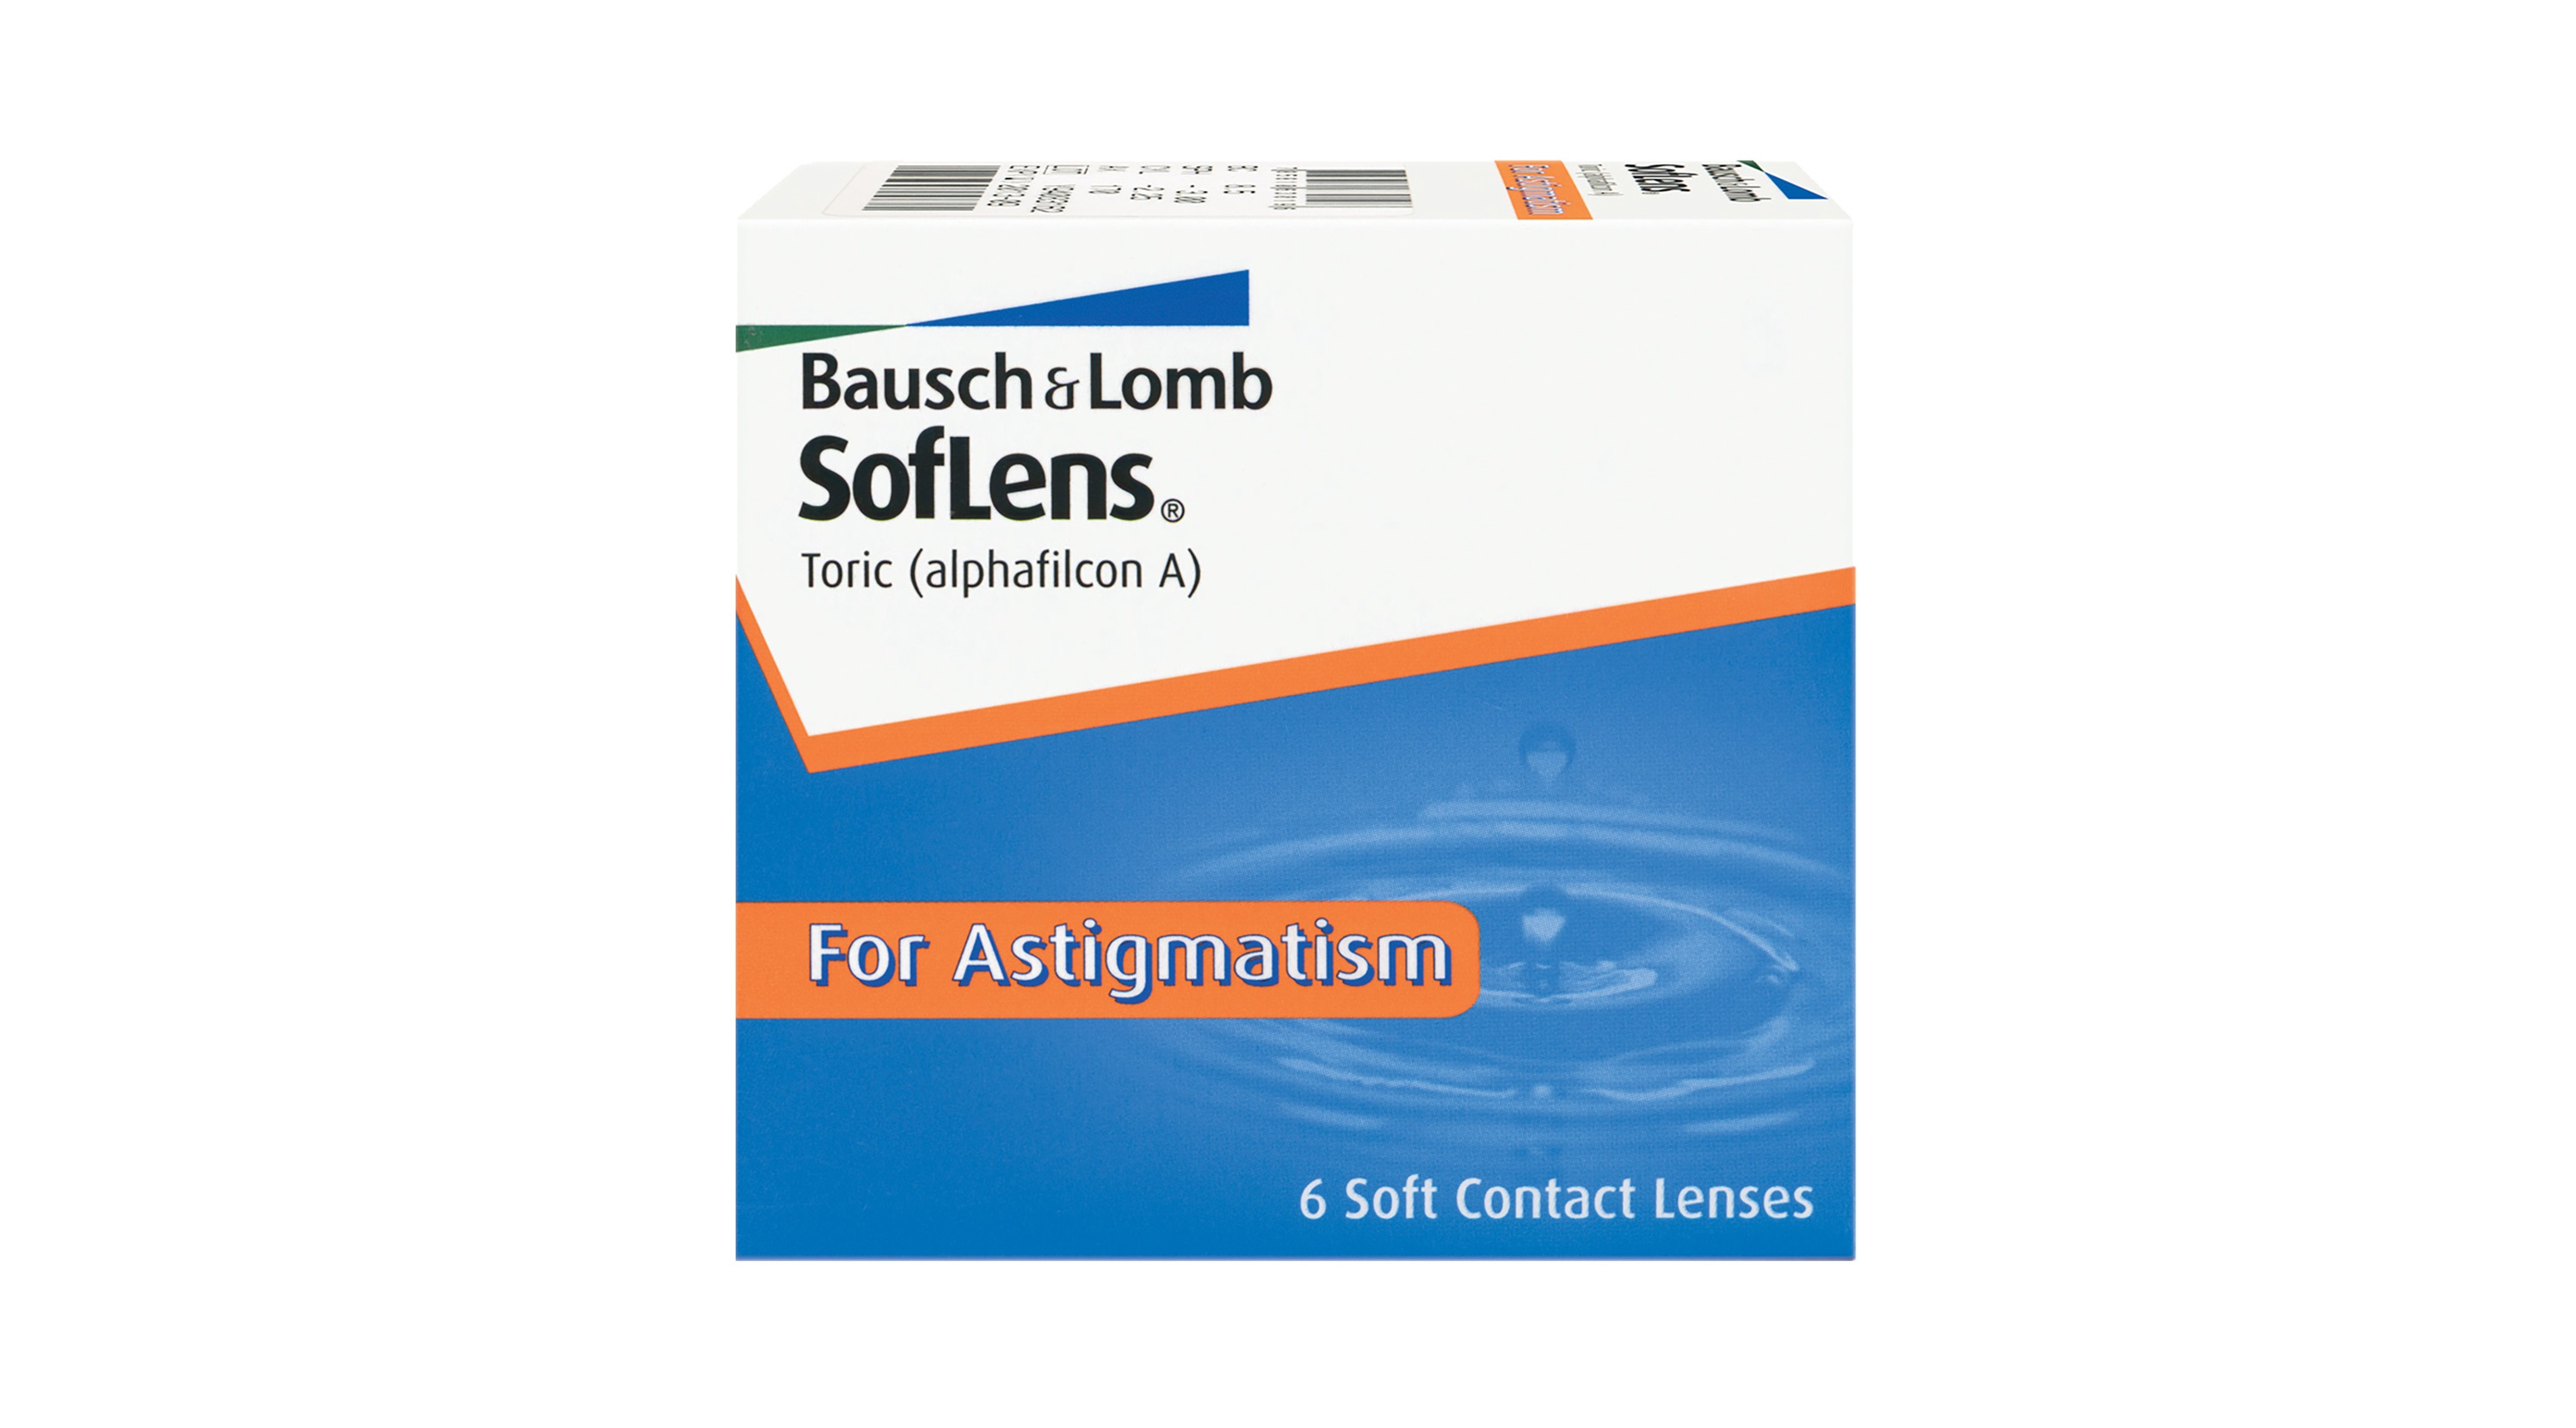 SofLens Toric For Astigmatism 6 Pack